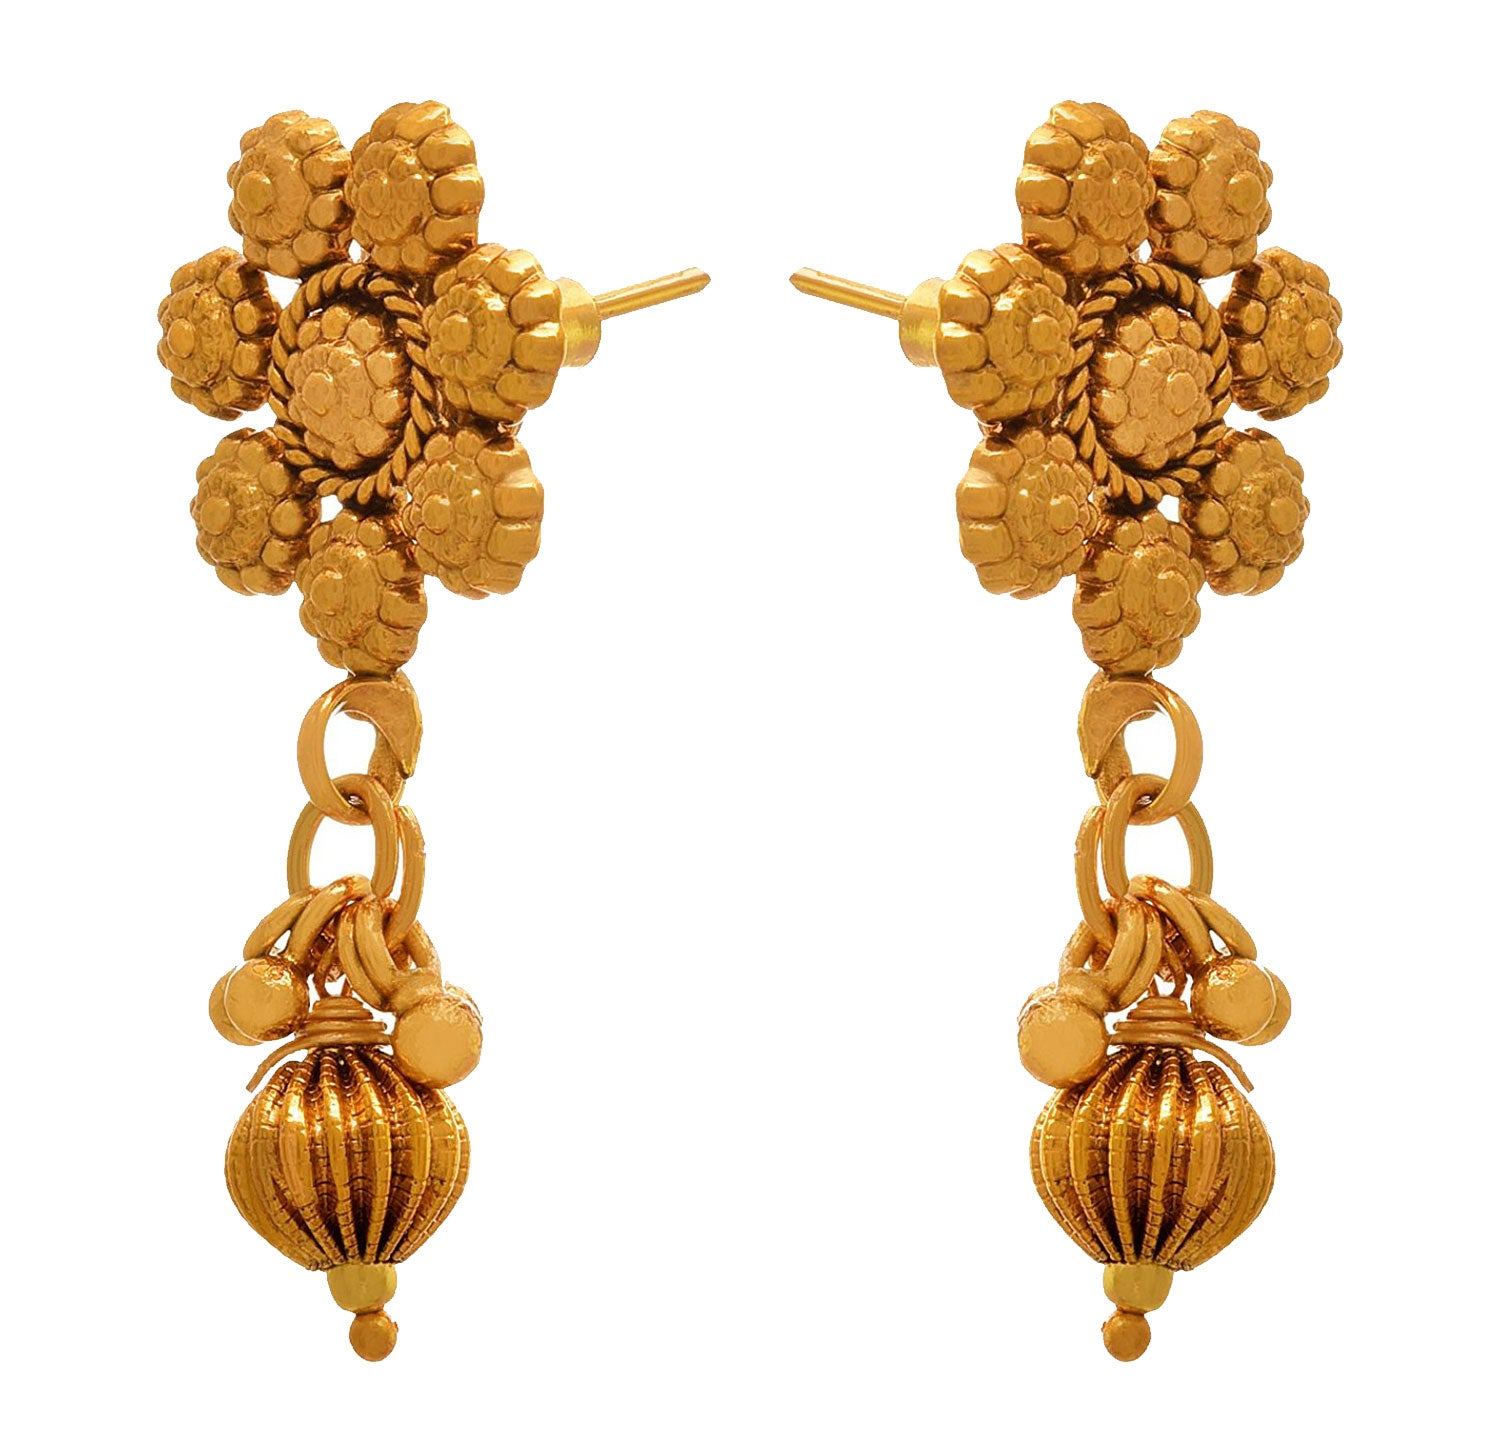 JFL- Traditional Ethnic One Gram Gold Plated Designer Earrings for Girls & Women.